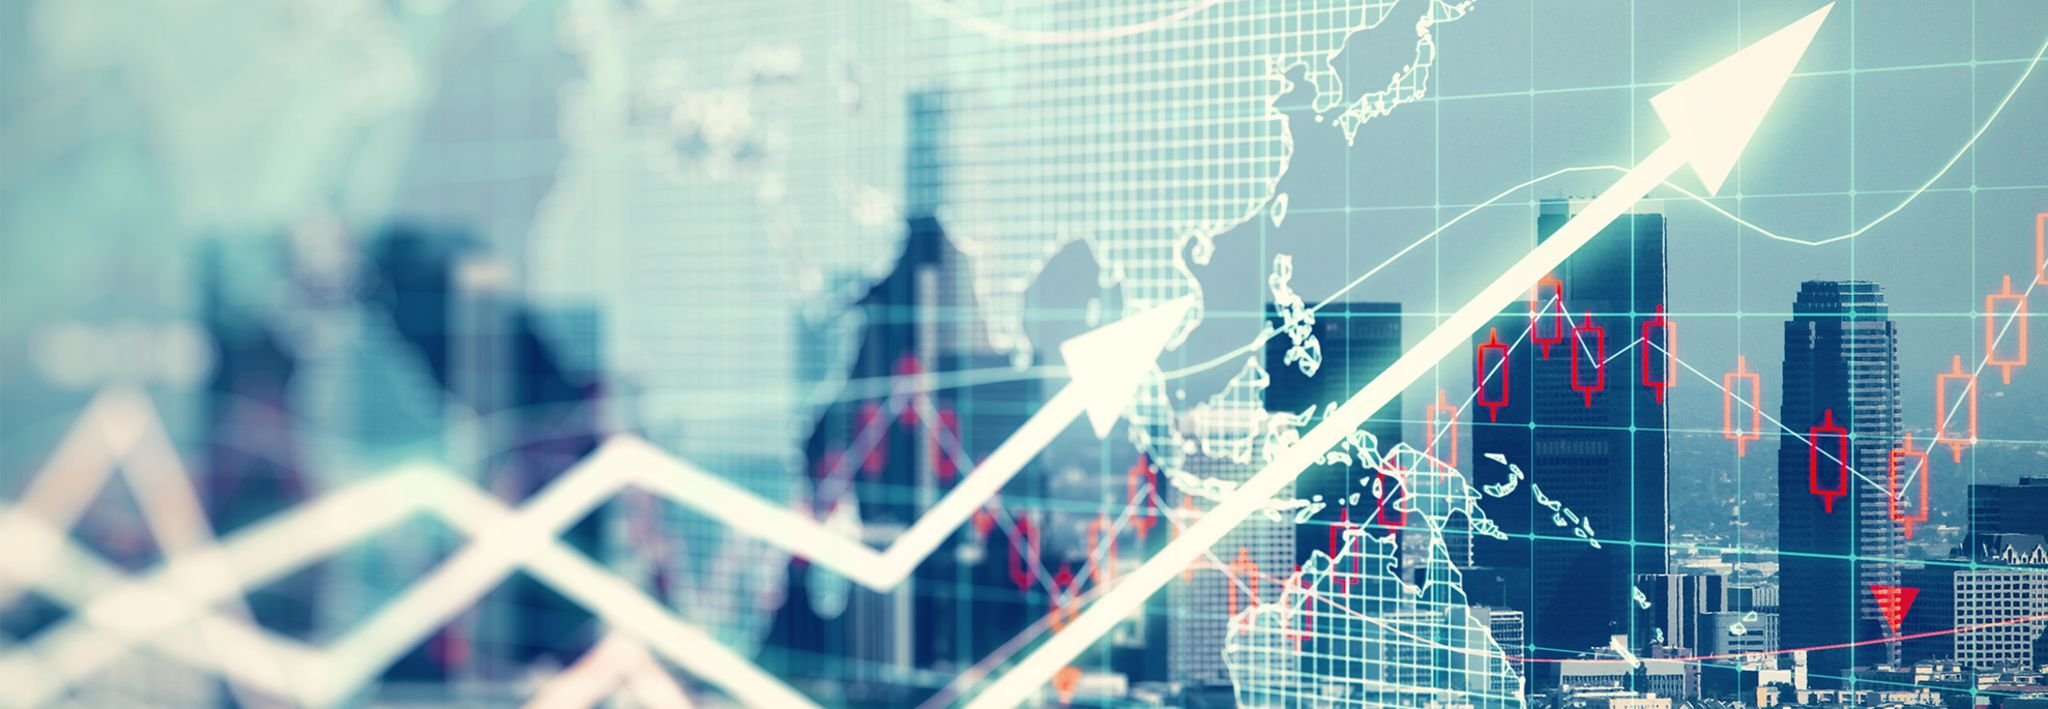 An electronic stock market chart represents growth and decrease in the stock market.